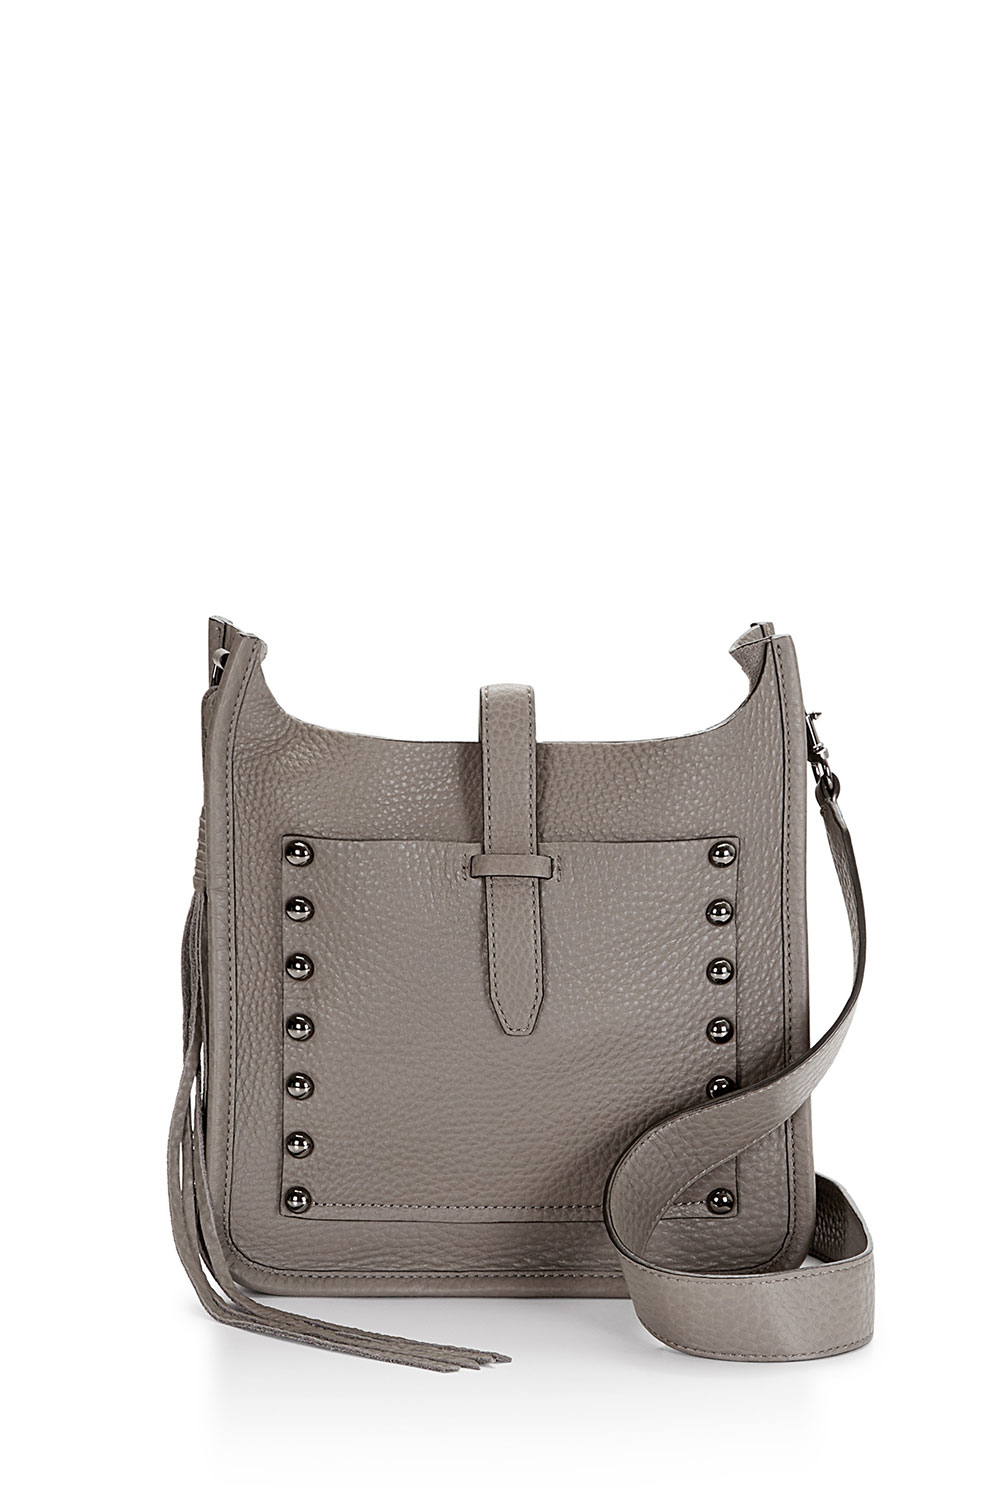 f88b398e9d Lyst - Rebecca Minkoff Small Unlined Feed Bag